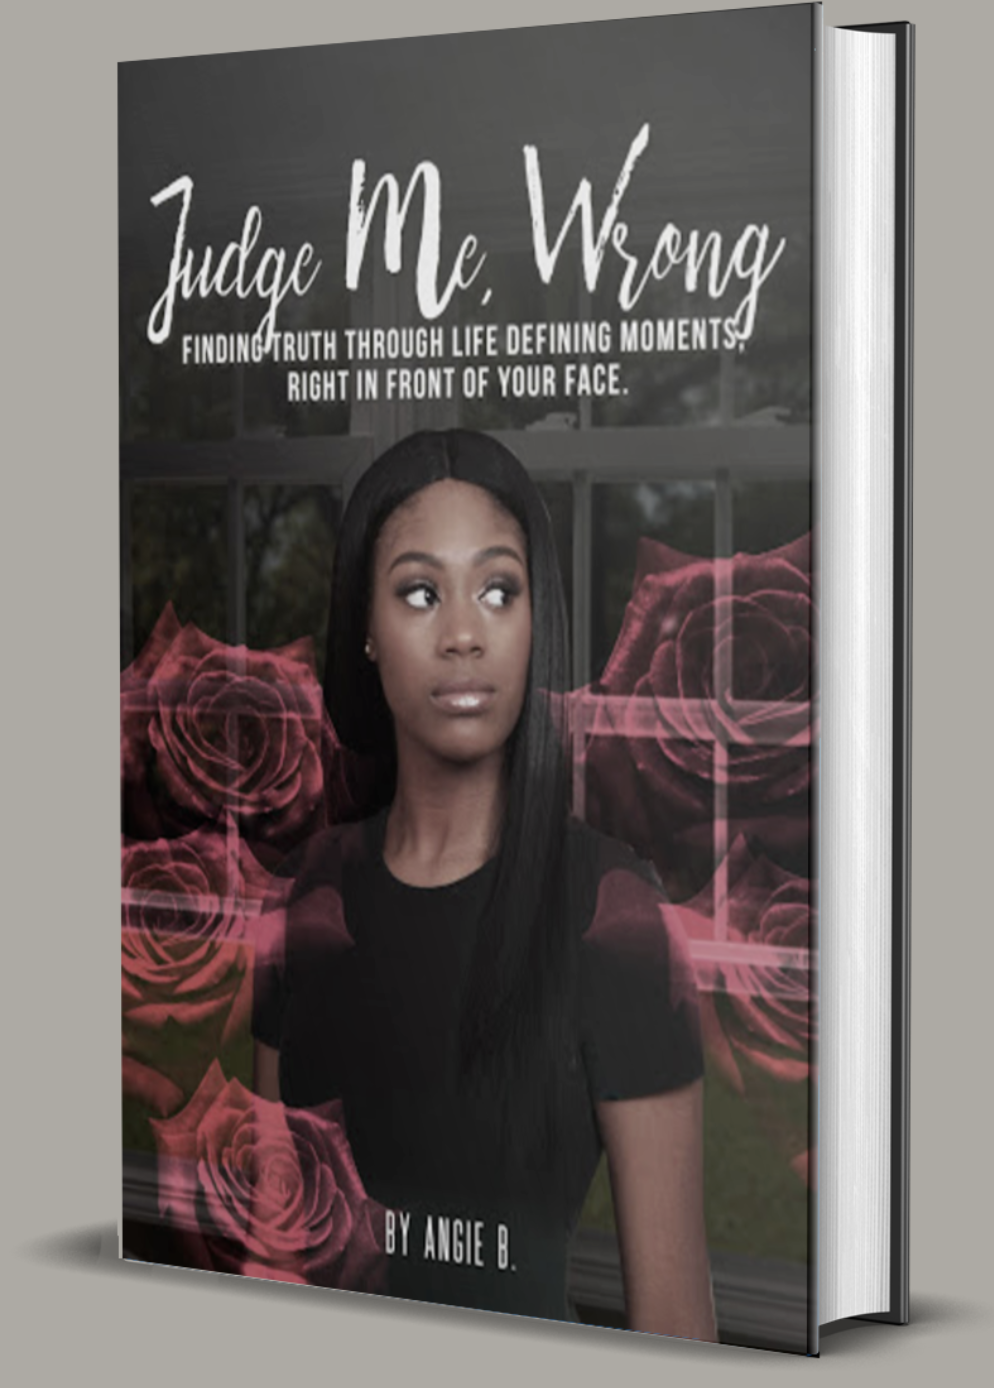 Author and Speaker, Angie B., Releases Novel Titled \